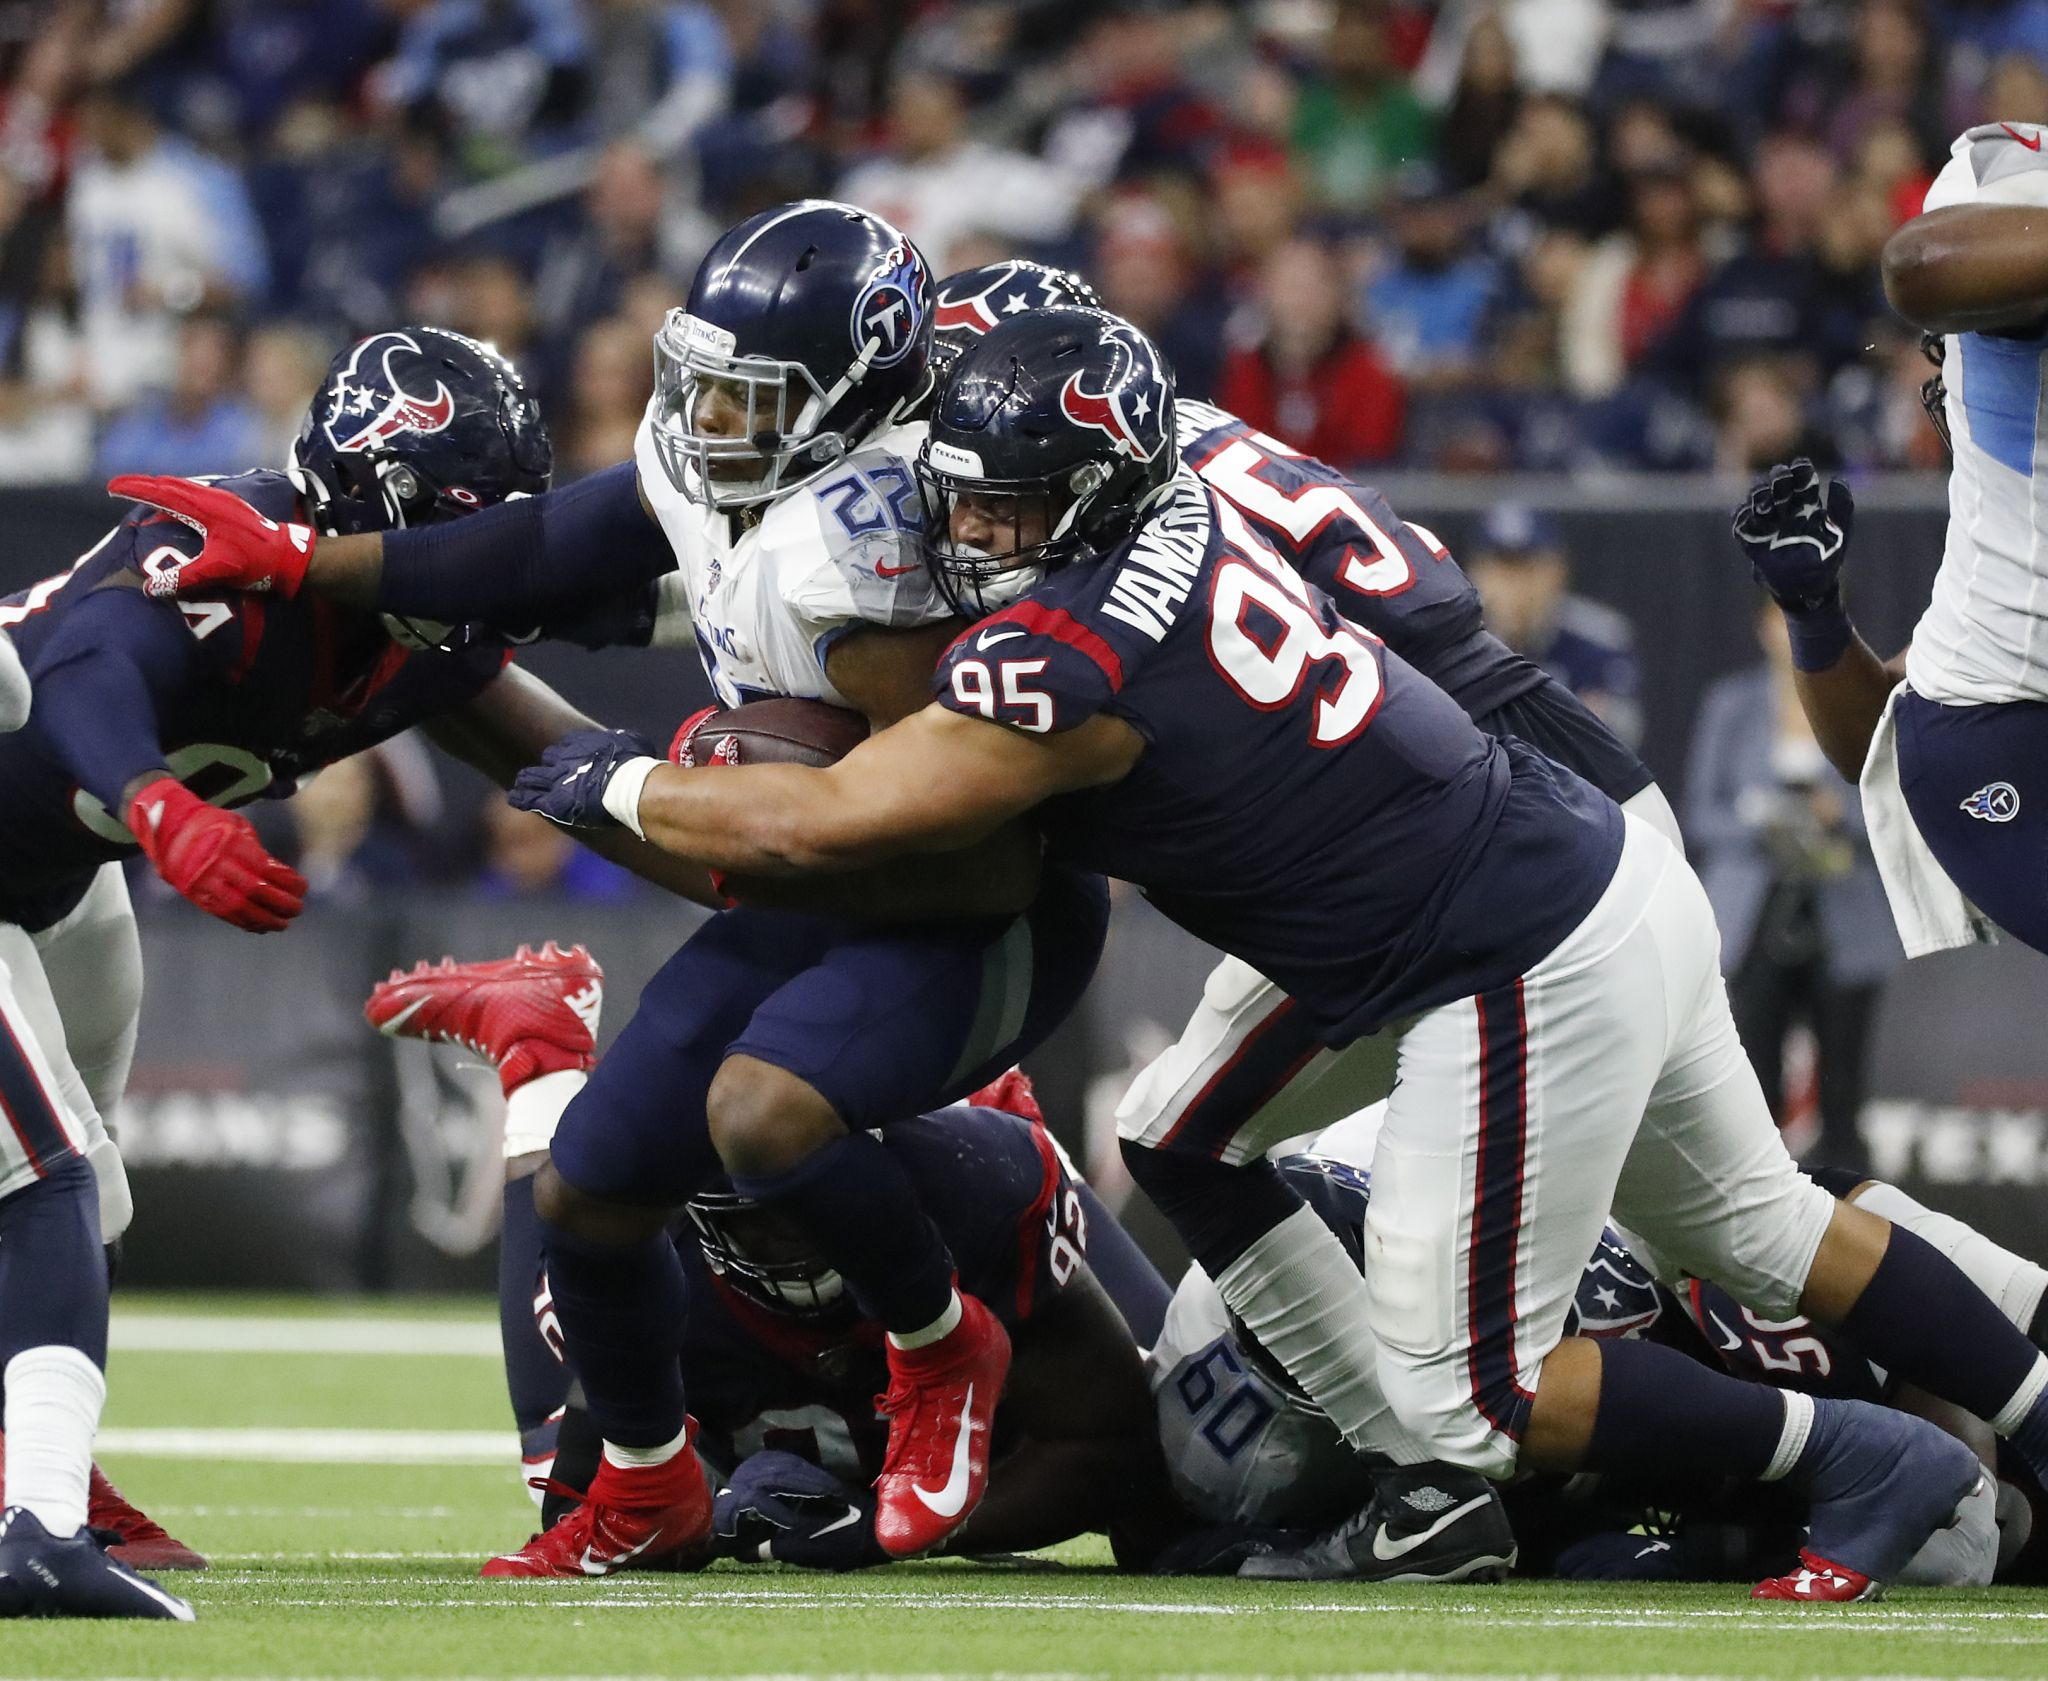 Photo of Texans defensive lineman opts out for 2020   HoustonChronicle.com